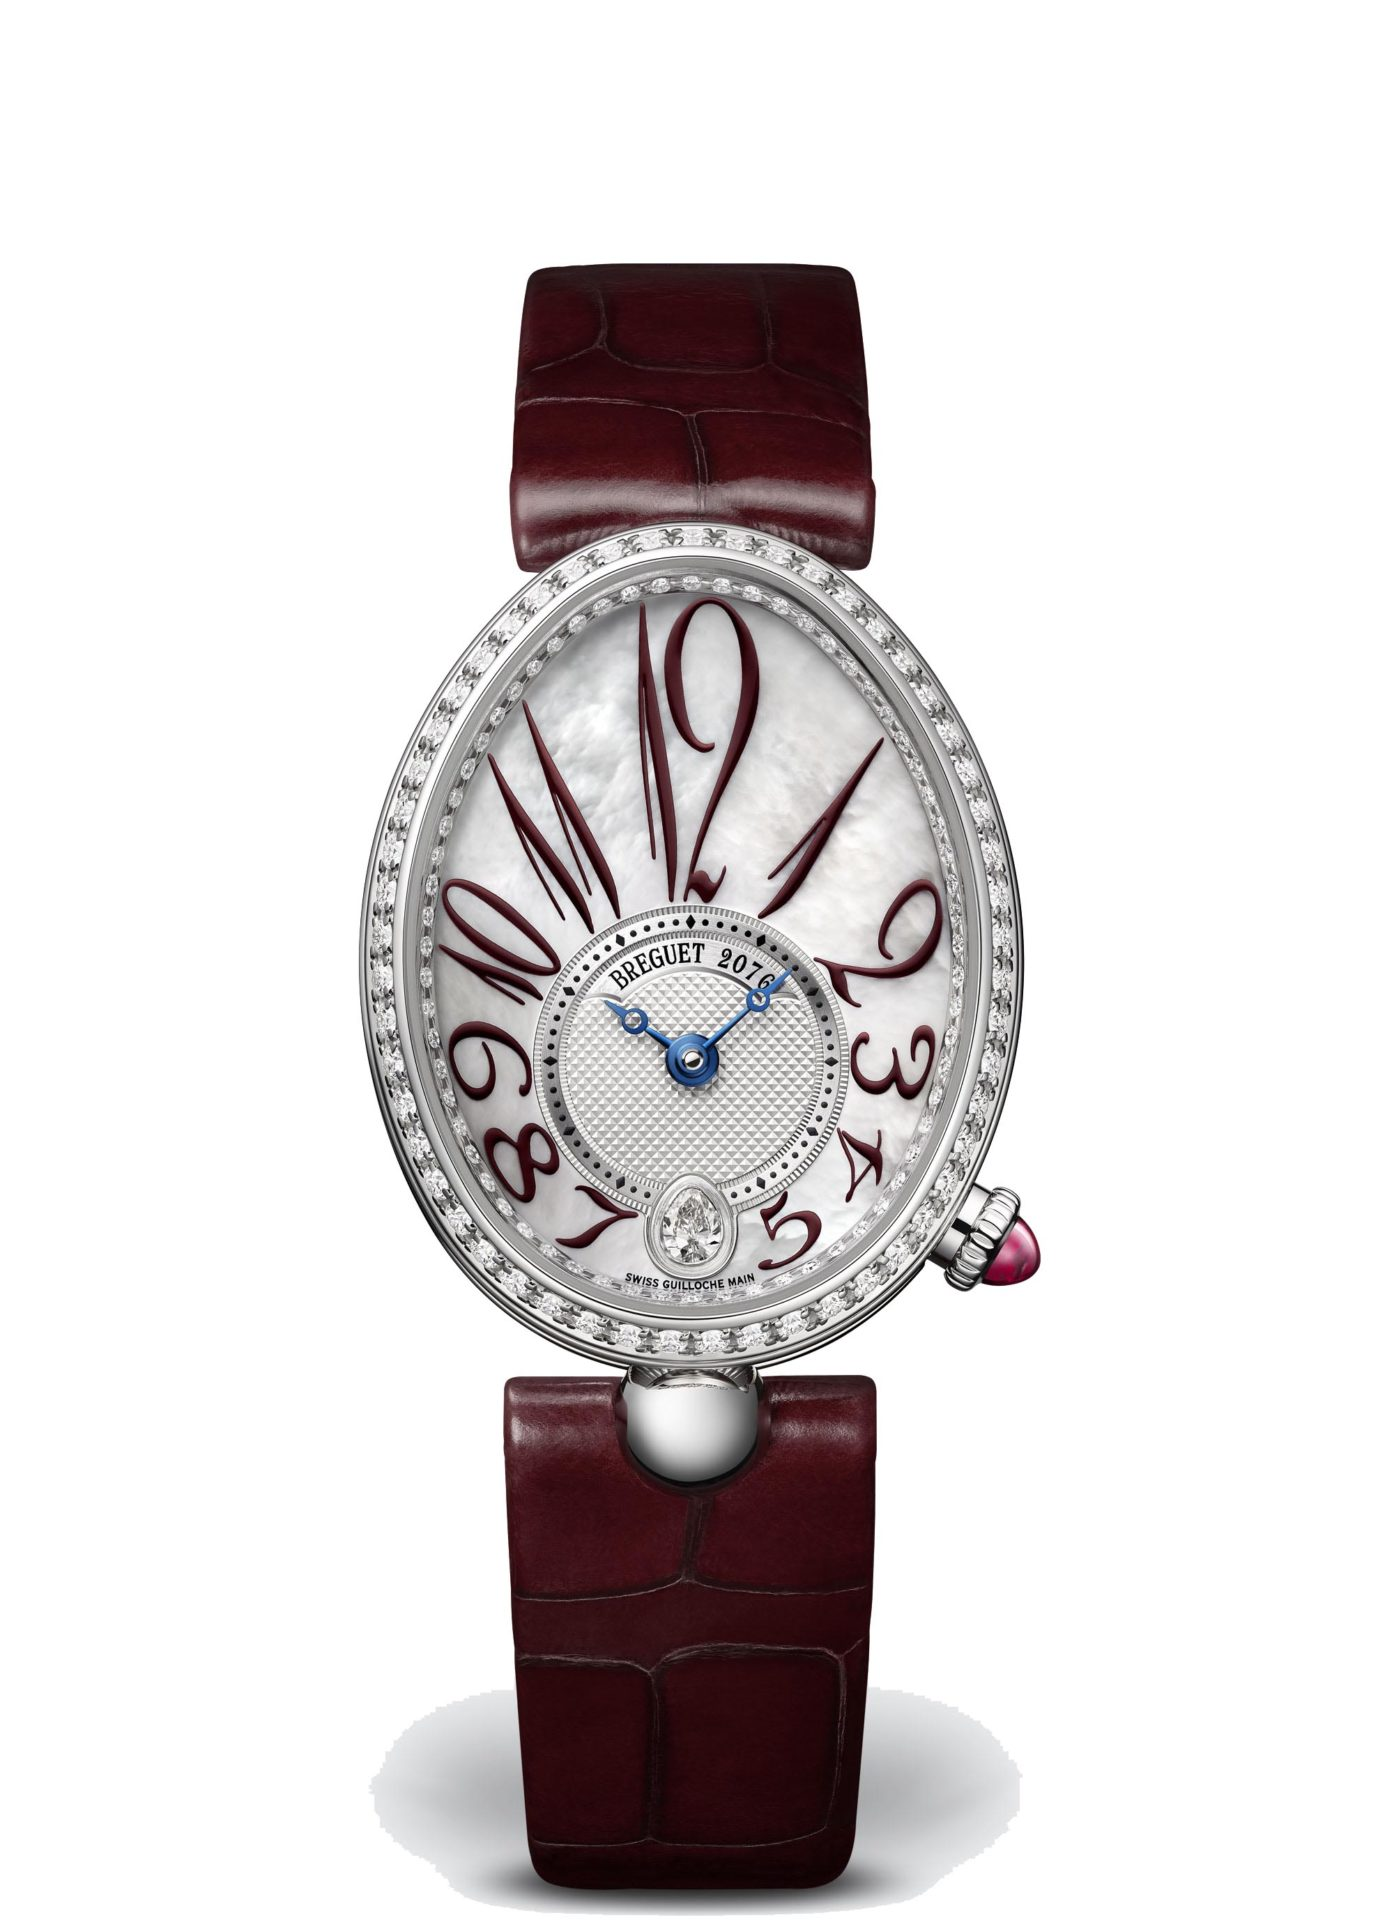 Breguet-Reine-de-Naples-8918-Hall-of-Time-8918BB-5P-964-D00D